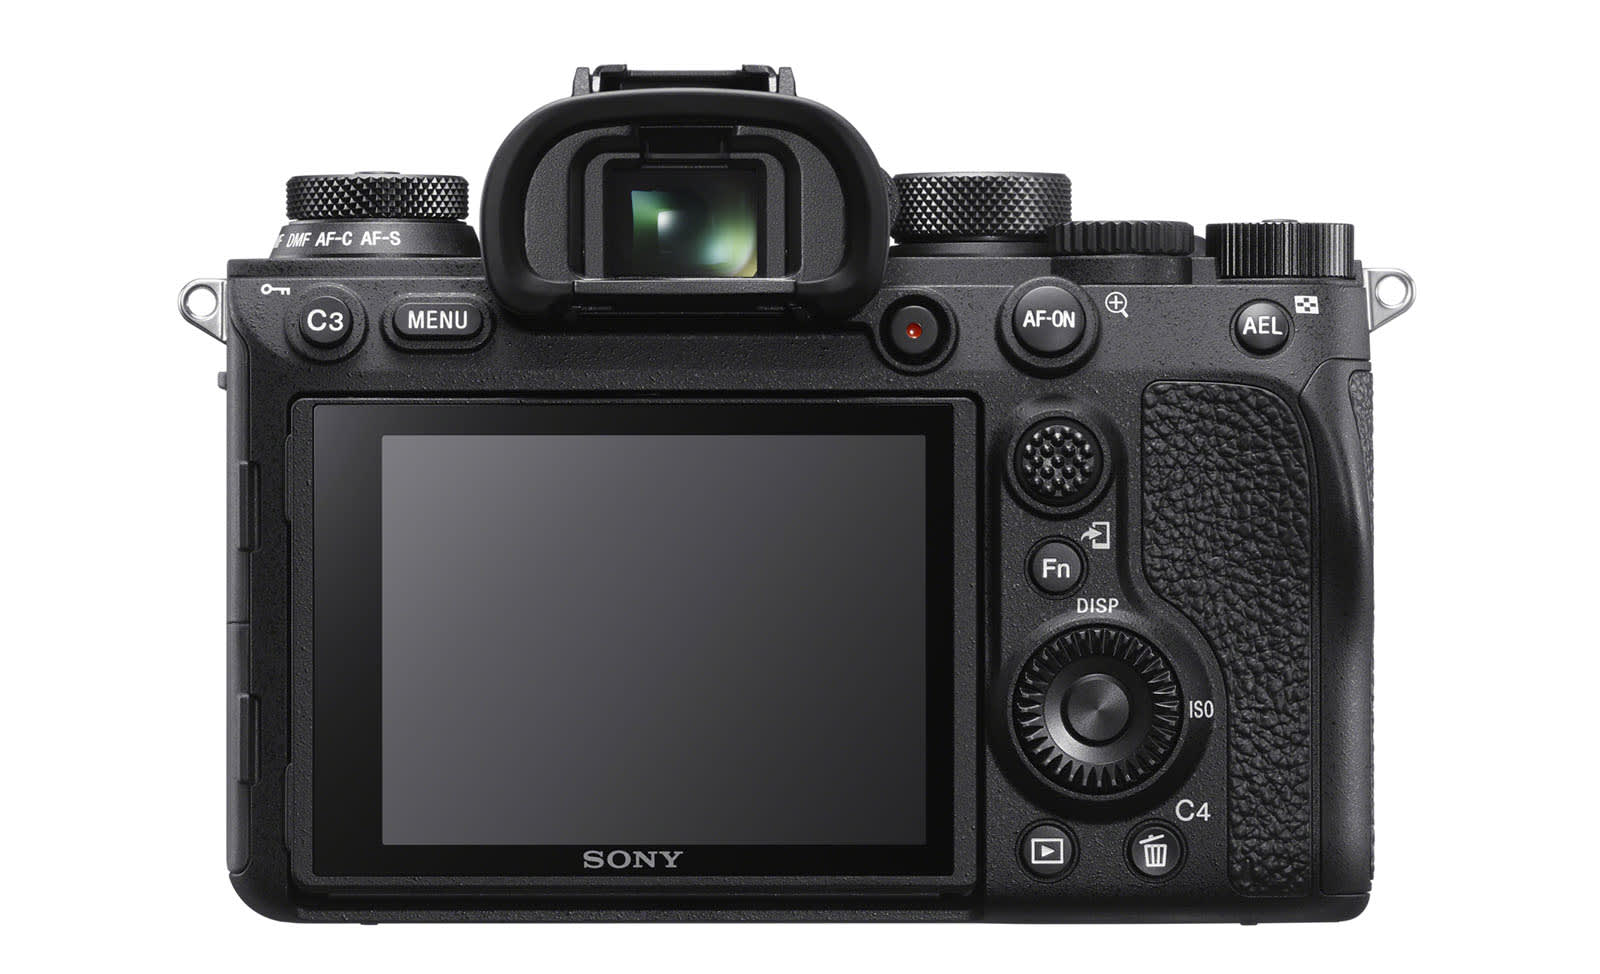 Sony A9 II full-frame mirrorless camera